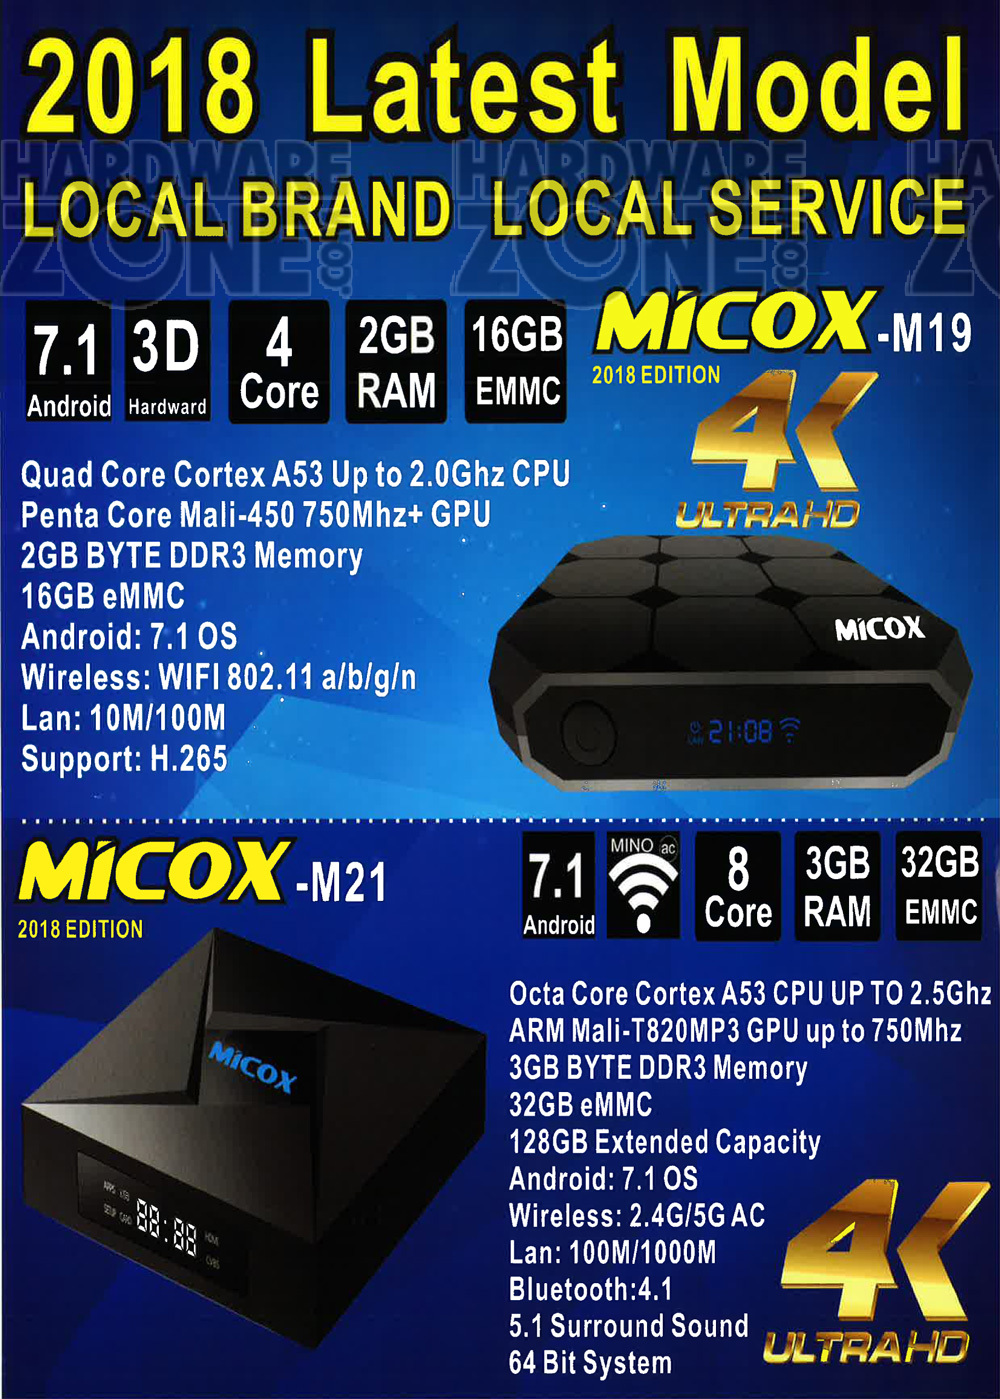 Micox - Pg 1 Brochures from IT Show 2018 Singapore on Tech